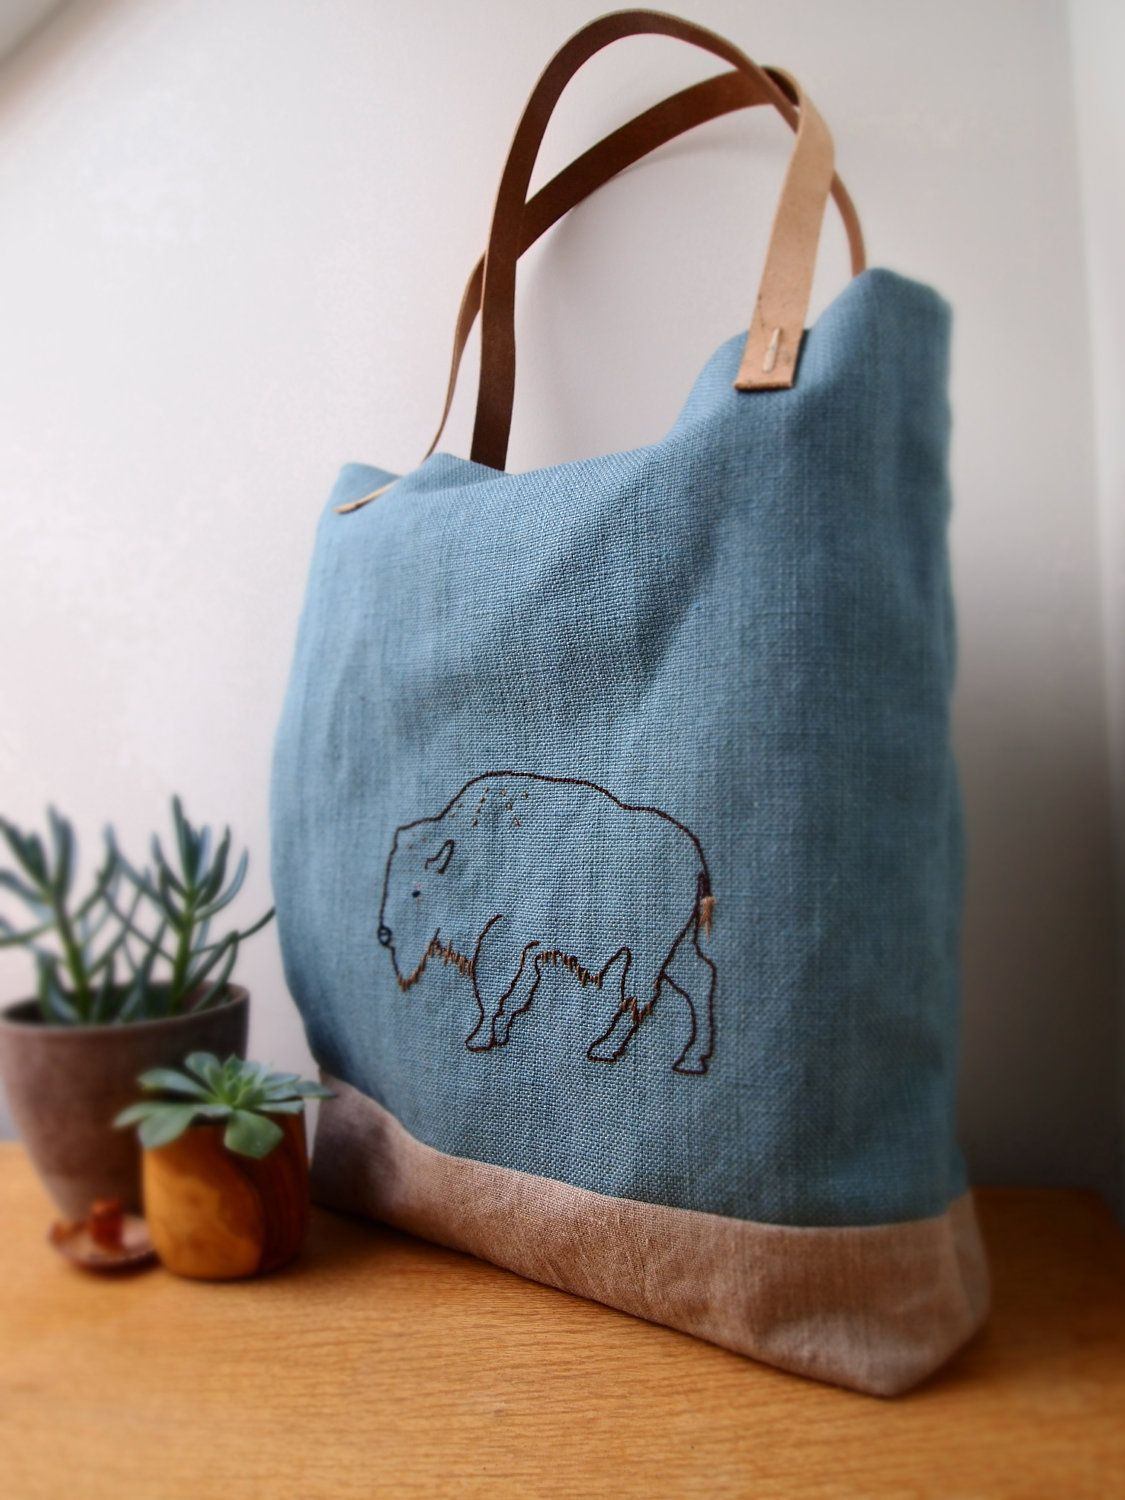 Bison Buffalo hand embroidered bag by JeanieDeans on Etsy